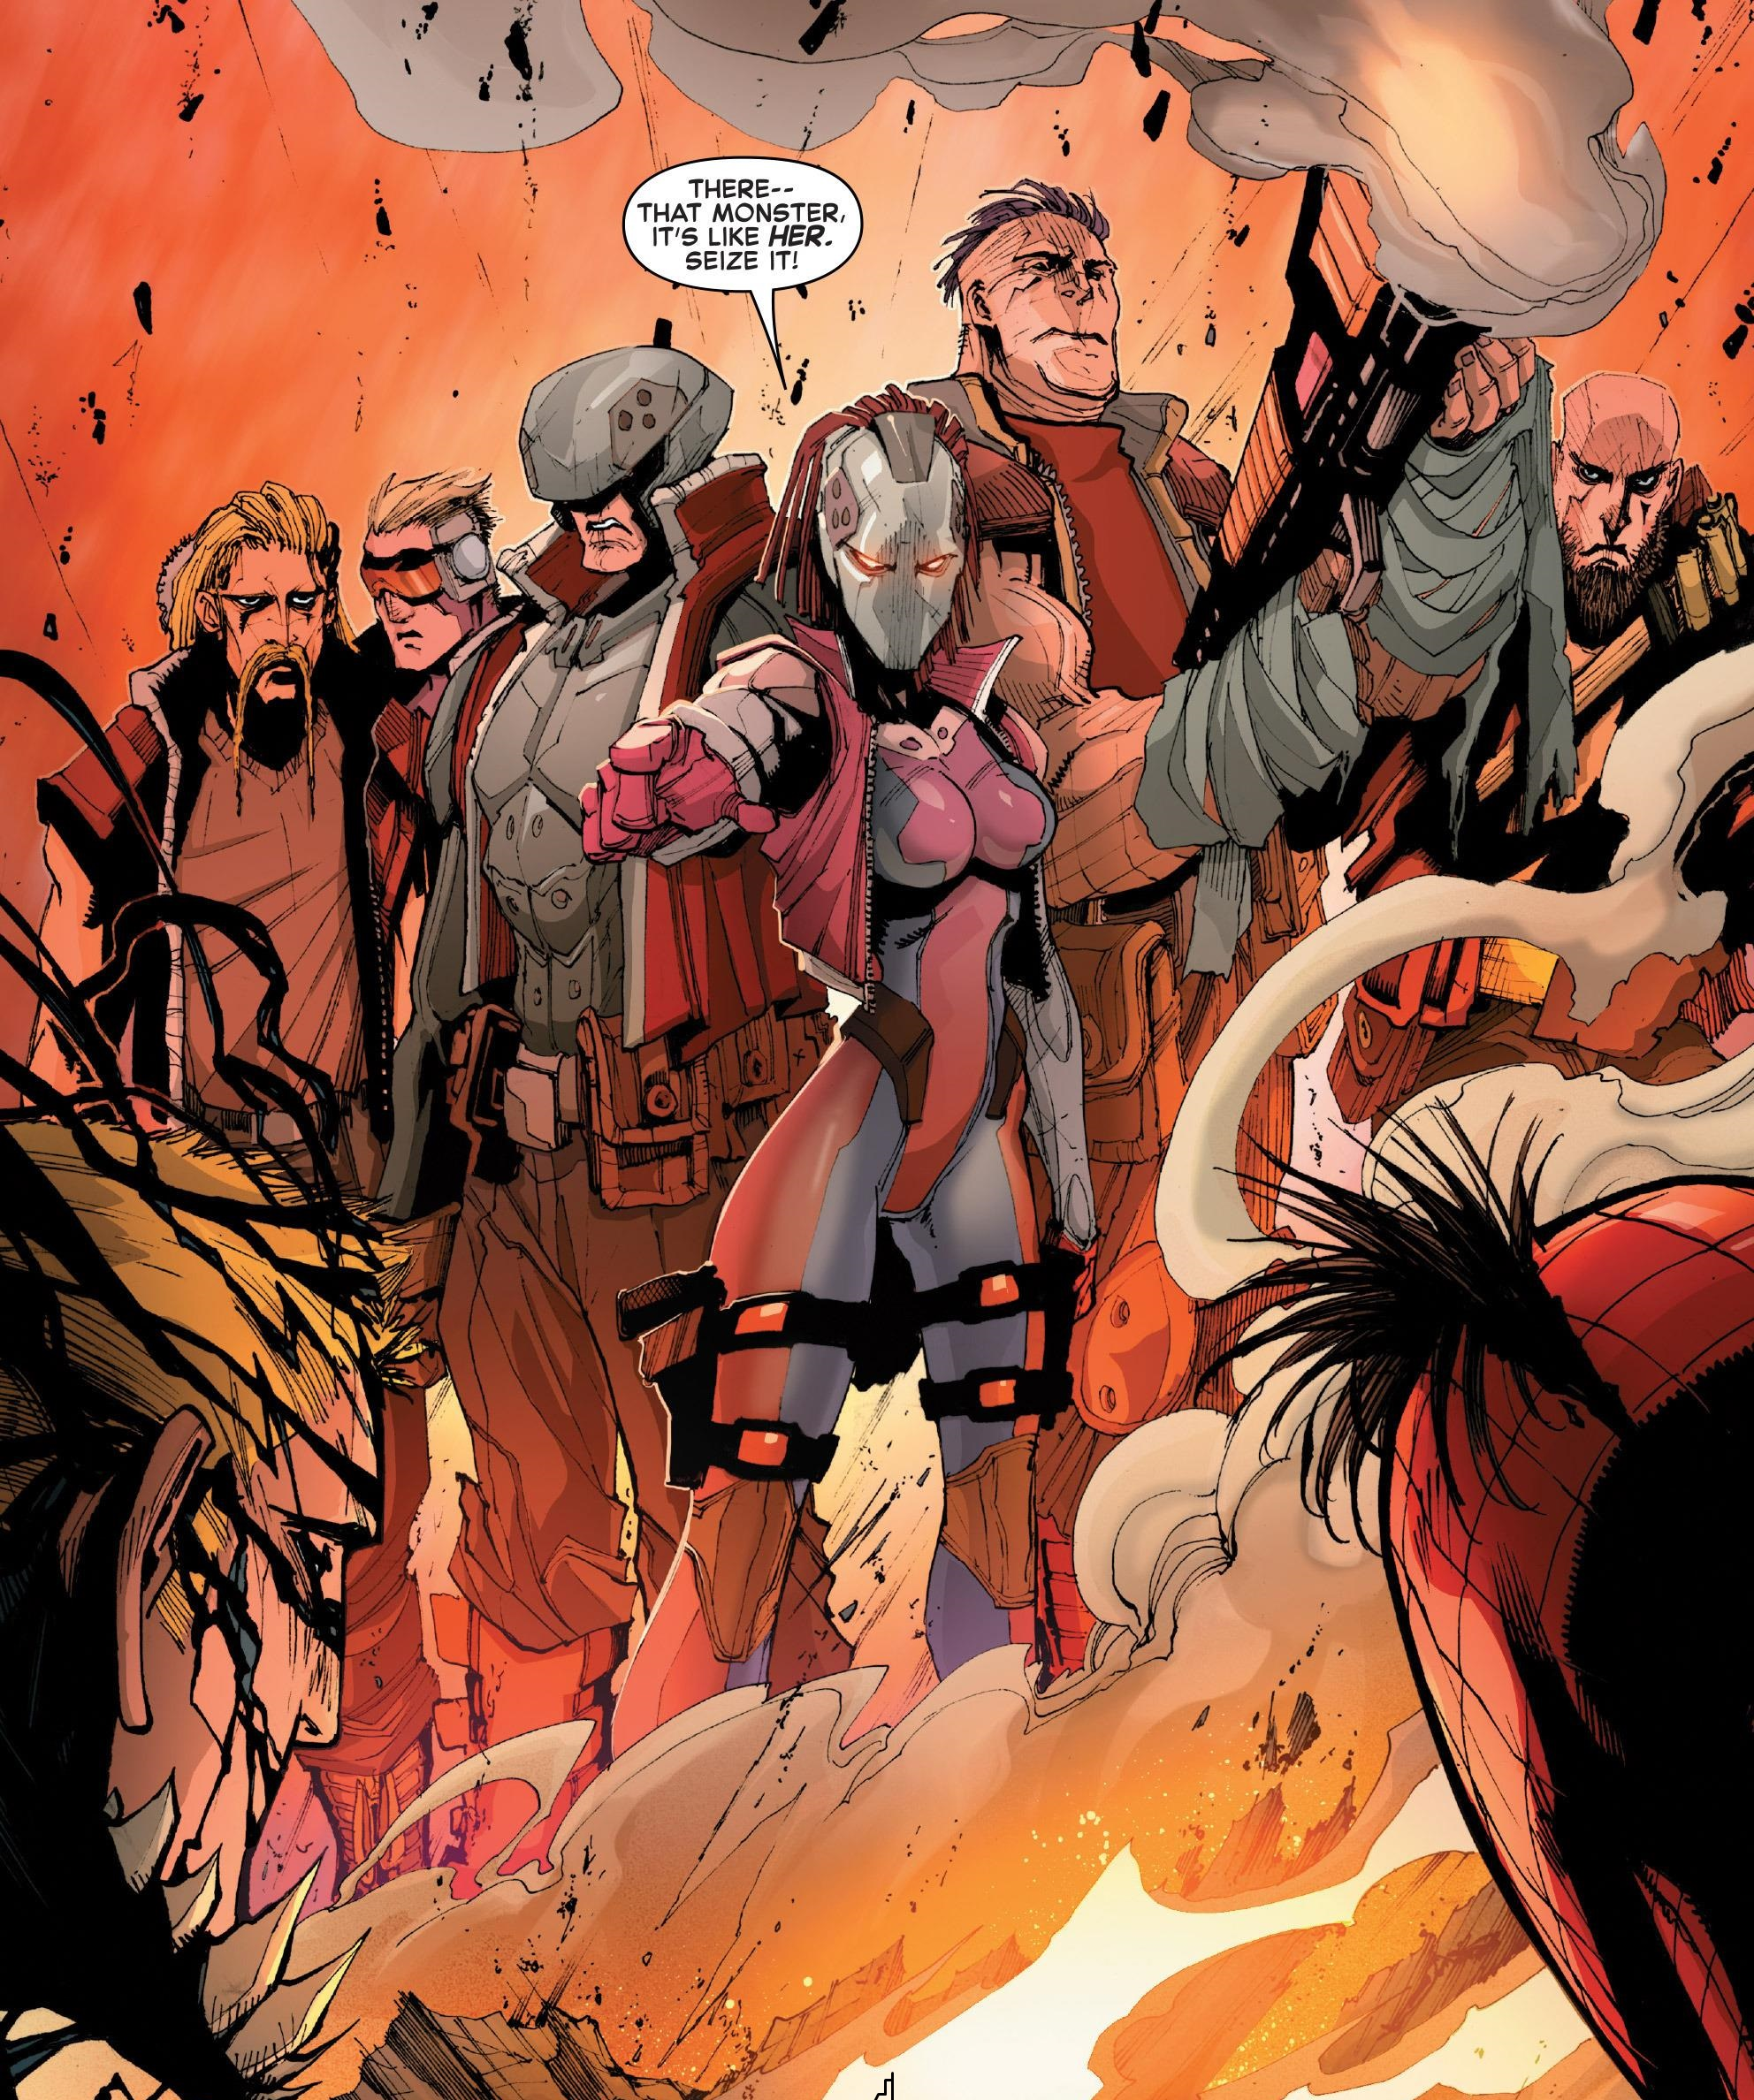 Red Hand Gang (Earth-616)/Gallery